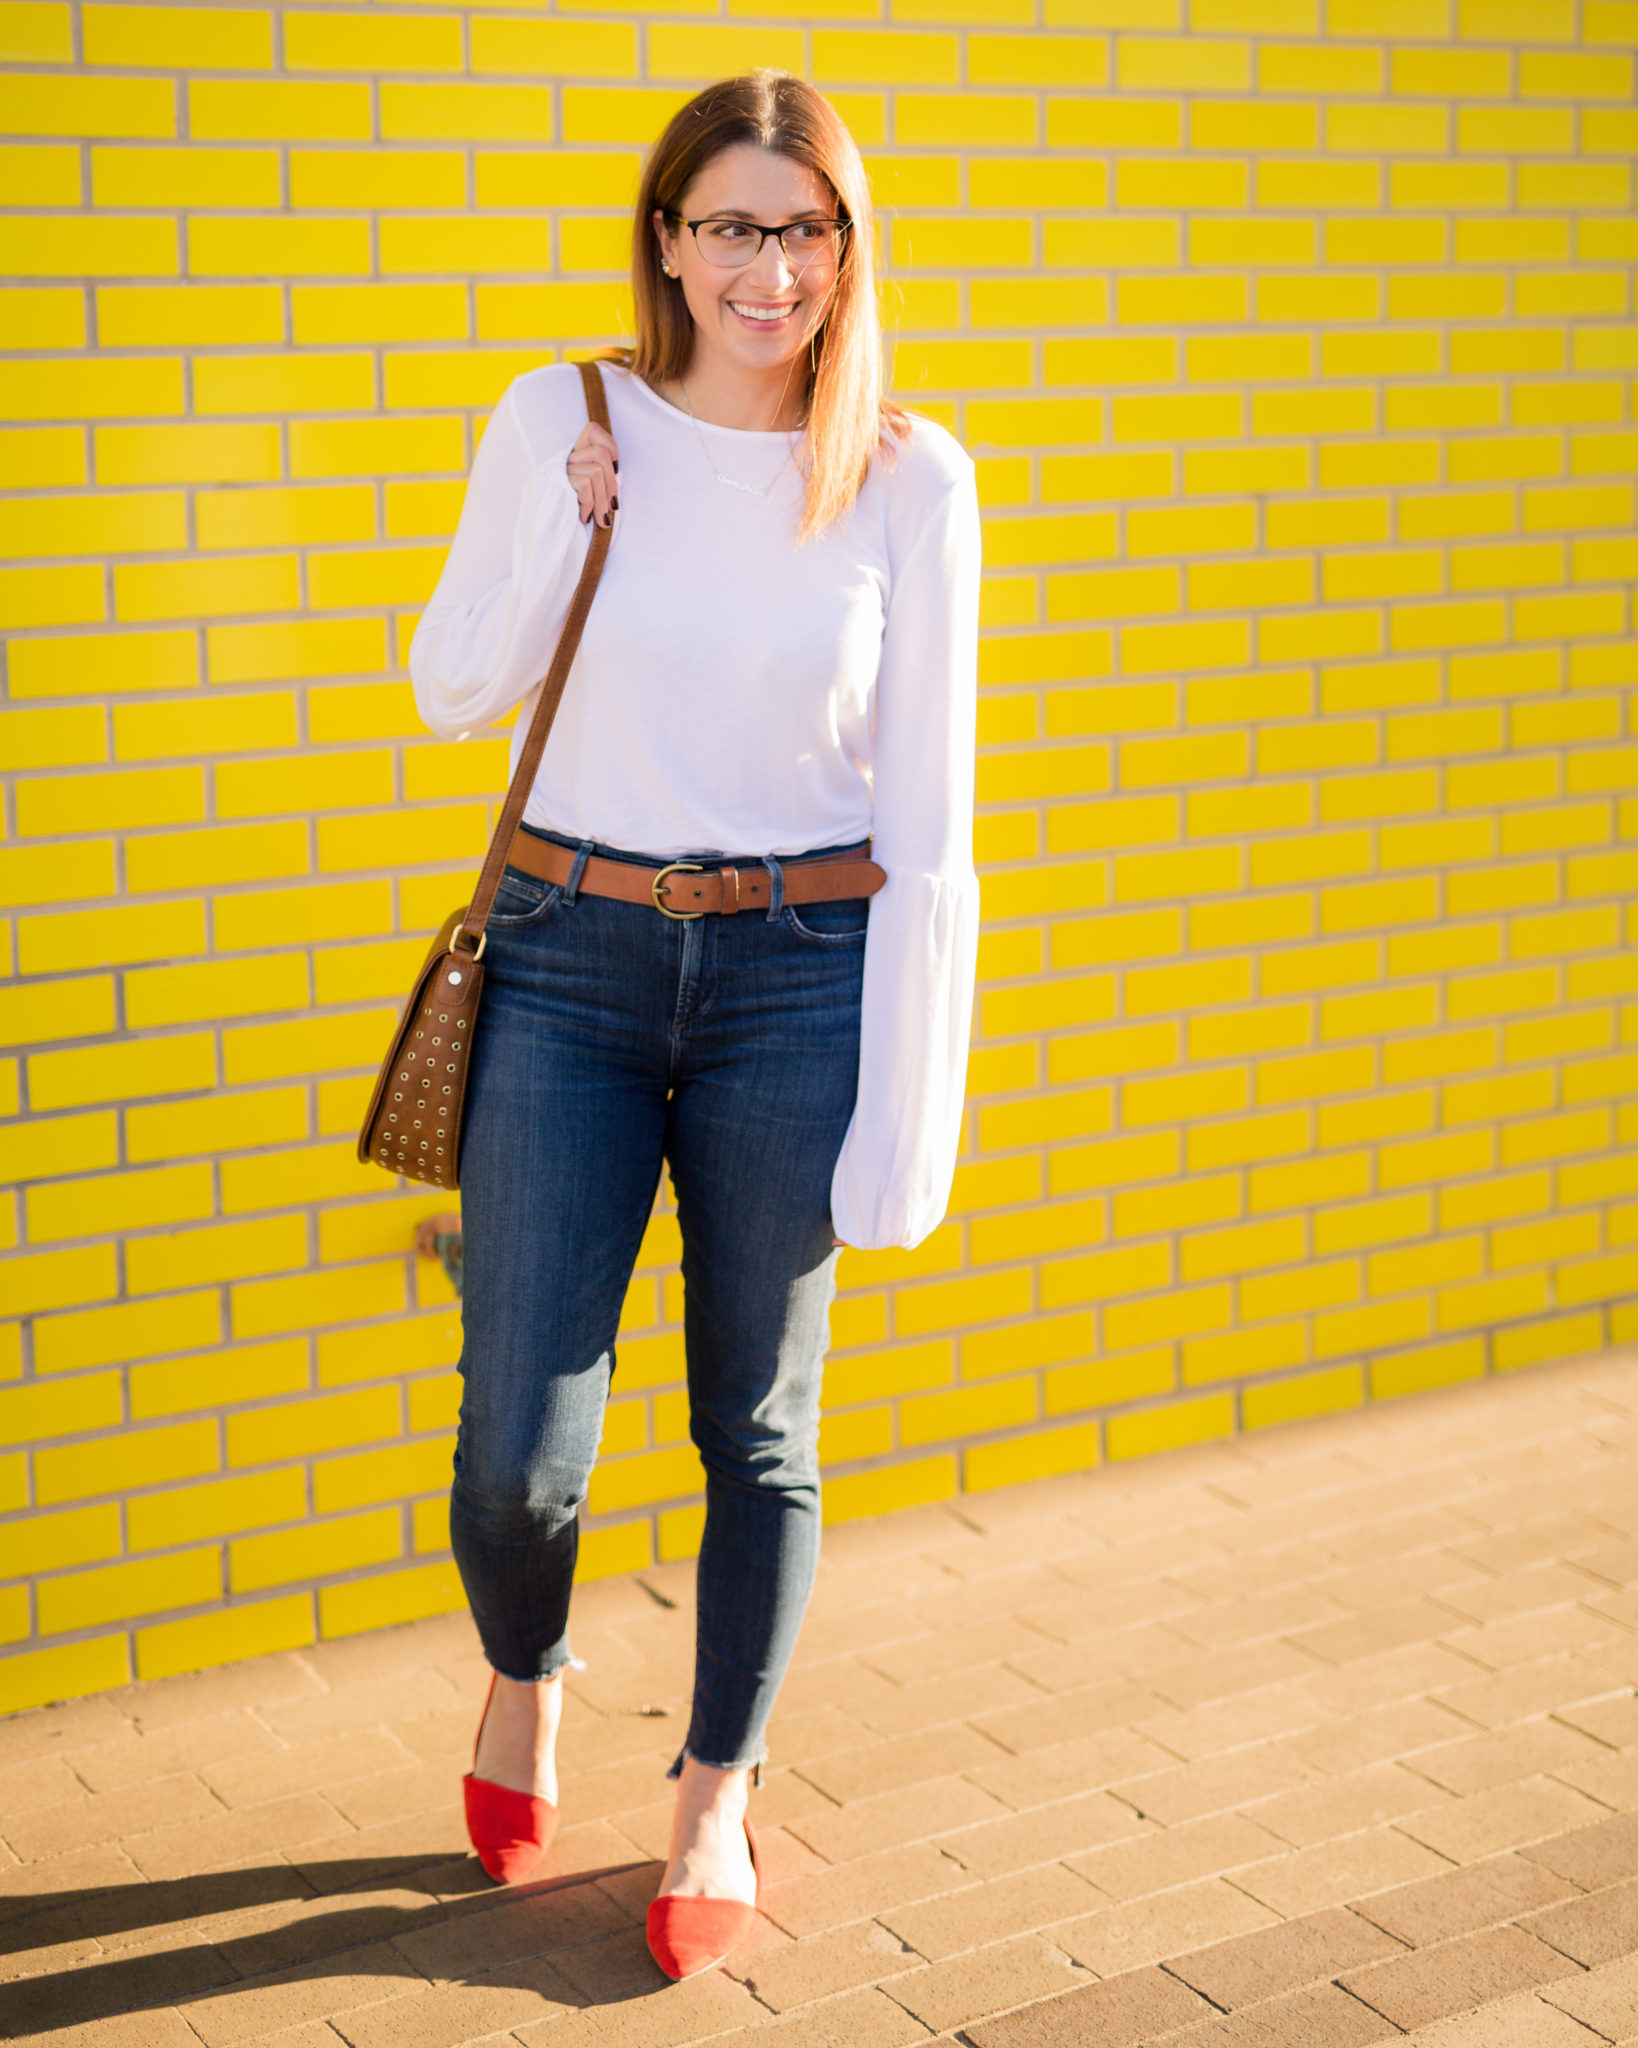 how to style a white tee and jeans | and upgrade on the white tee | my fall capsule wardrobe on allweareblog.com